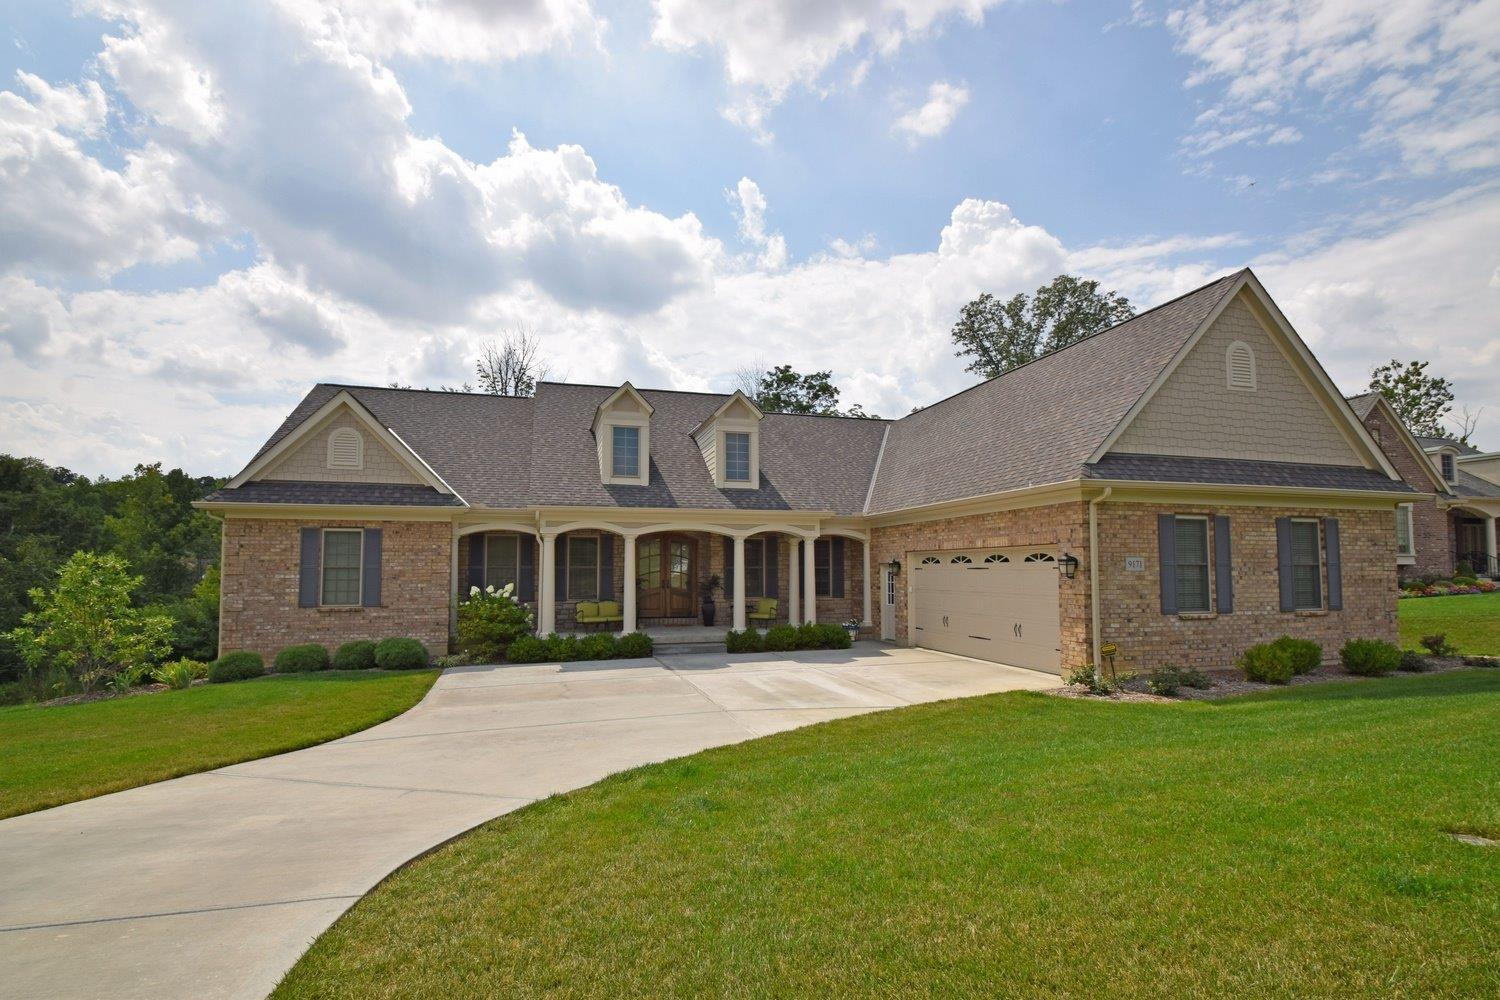 9171 Geromes Way, Symmes Twp, OH 45140